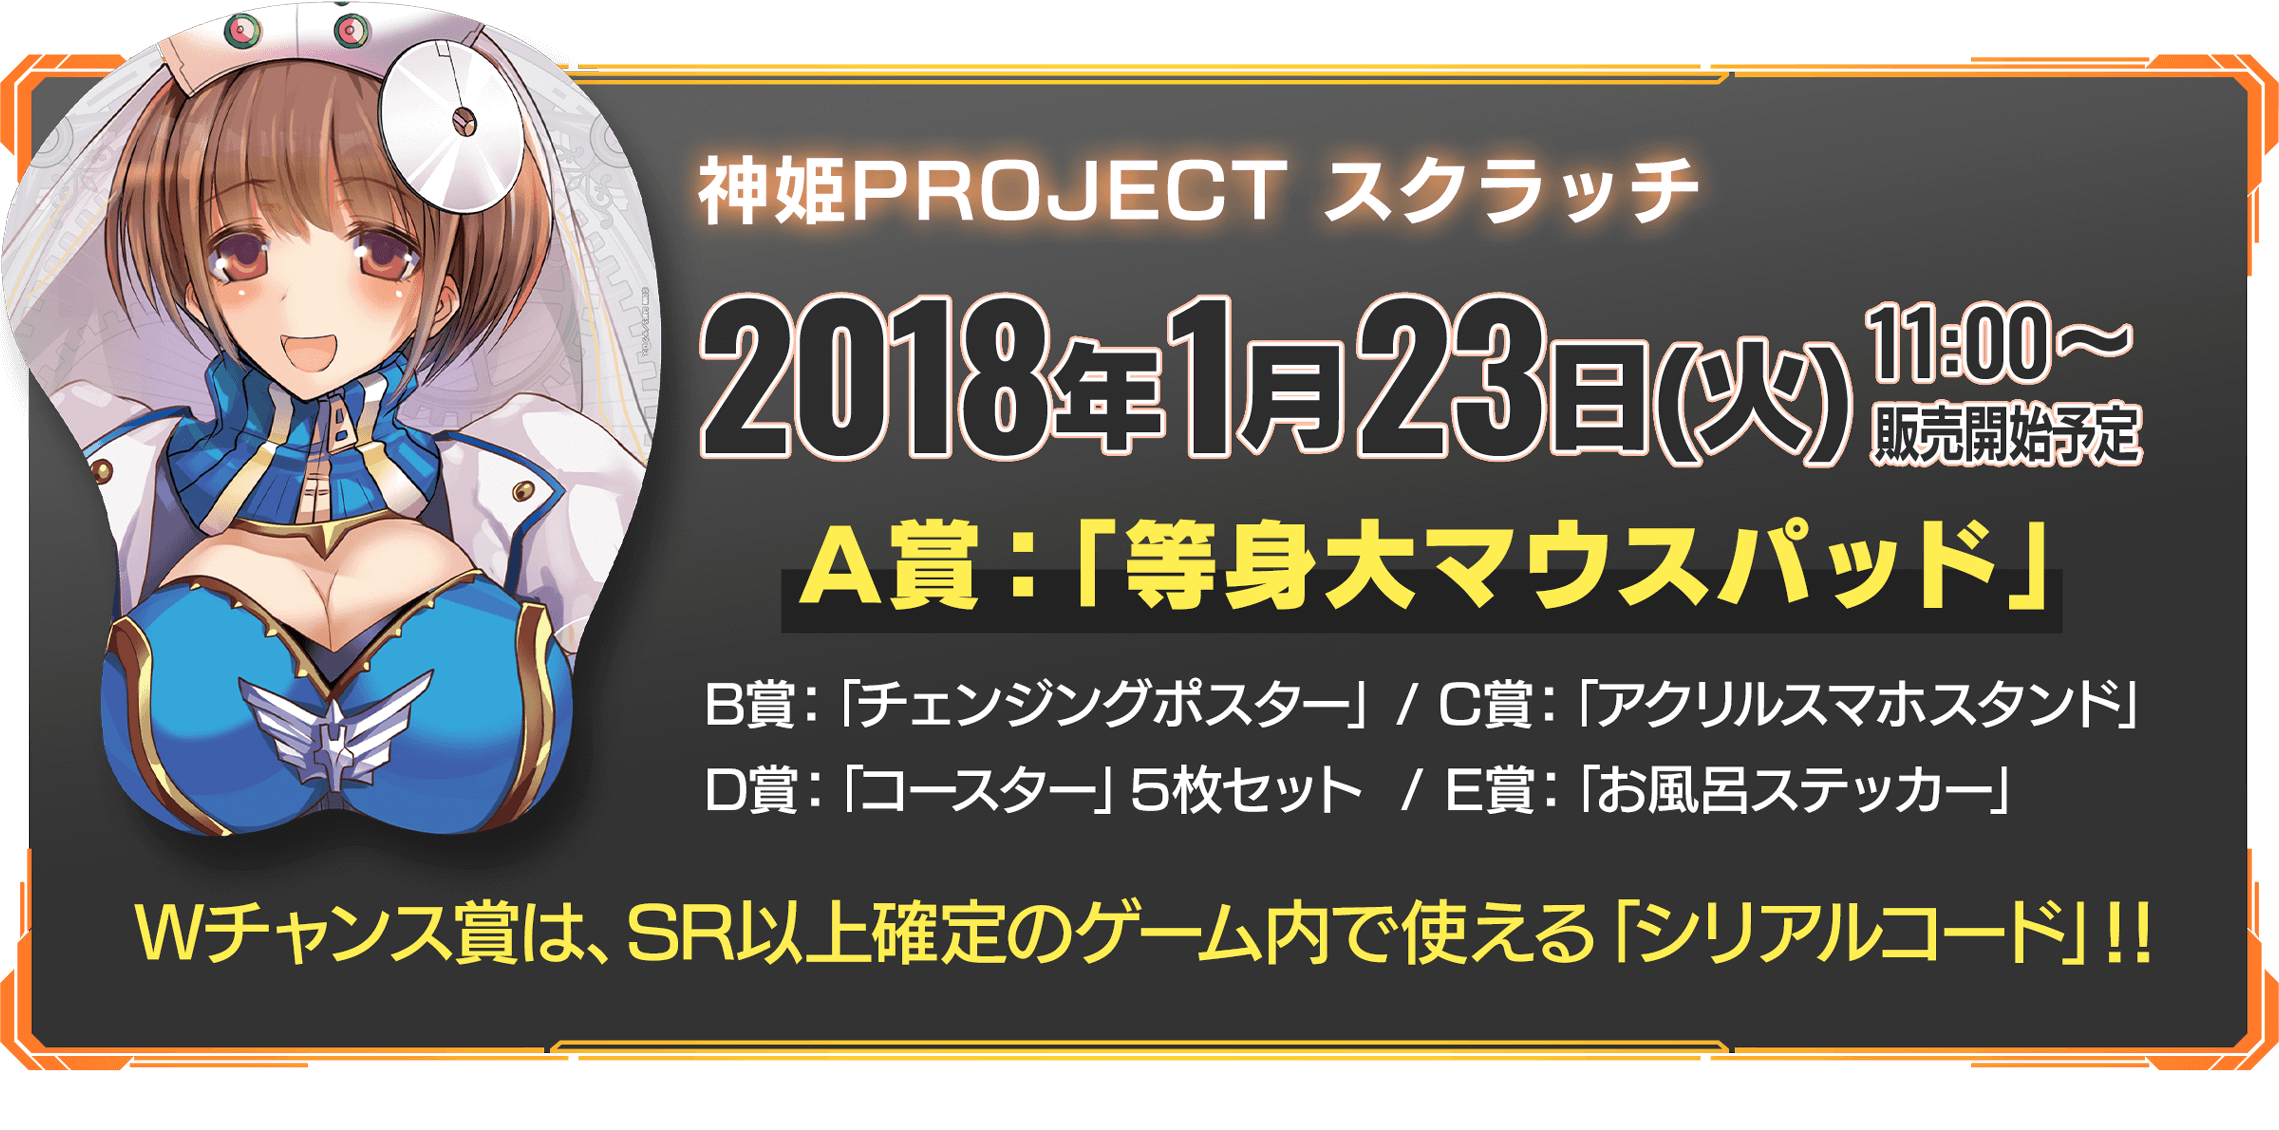 kamipro-campaign__img__06.png